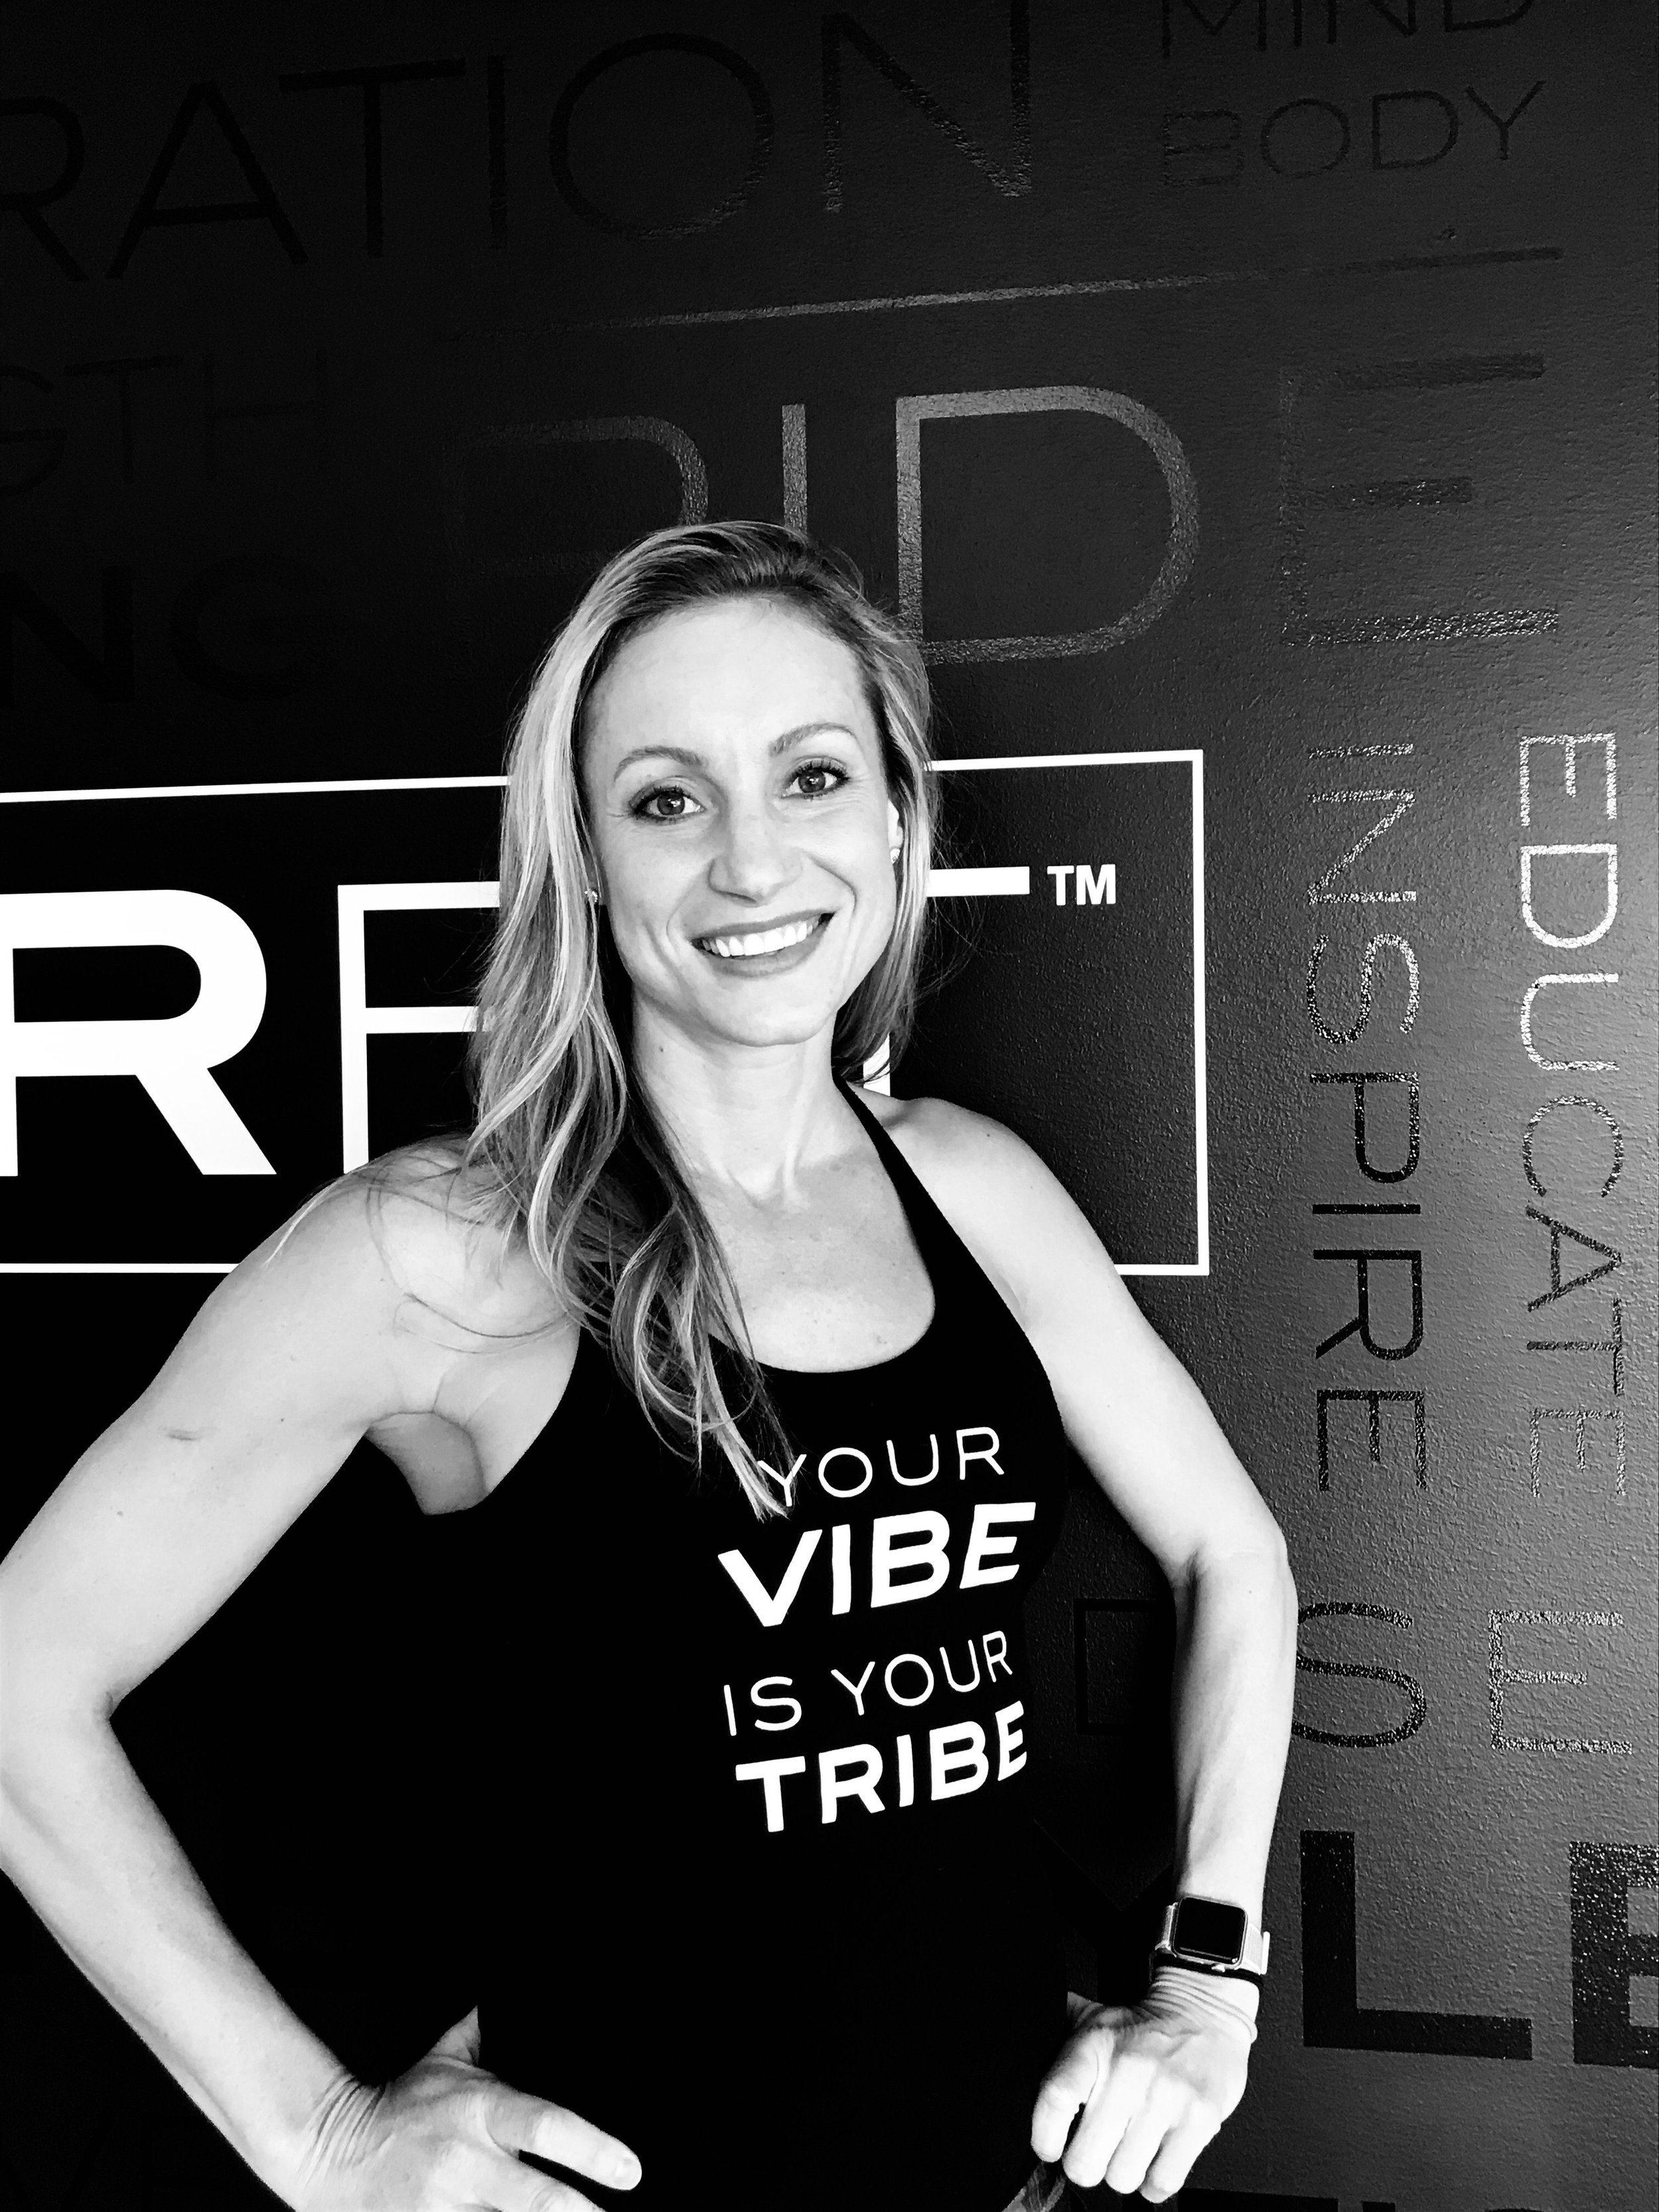 CARRIE WESSLING - Carrie has spent her life passionately involved with athletics, fitness, wellness, and yoga. She is trained in teaching strength and conditioning as well as PYTT 200 Hour RYT certified. Her teachings are focused on listening to your body, setting goals, reaching goals, and always keeping it fun! Guaranteed to see her groovin' to her music during the workout which will leave you drenched in sweat and feeling accomplished!